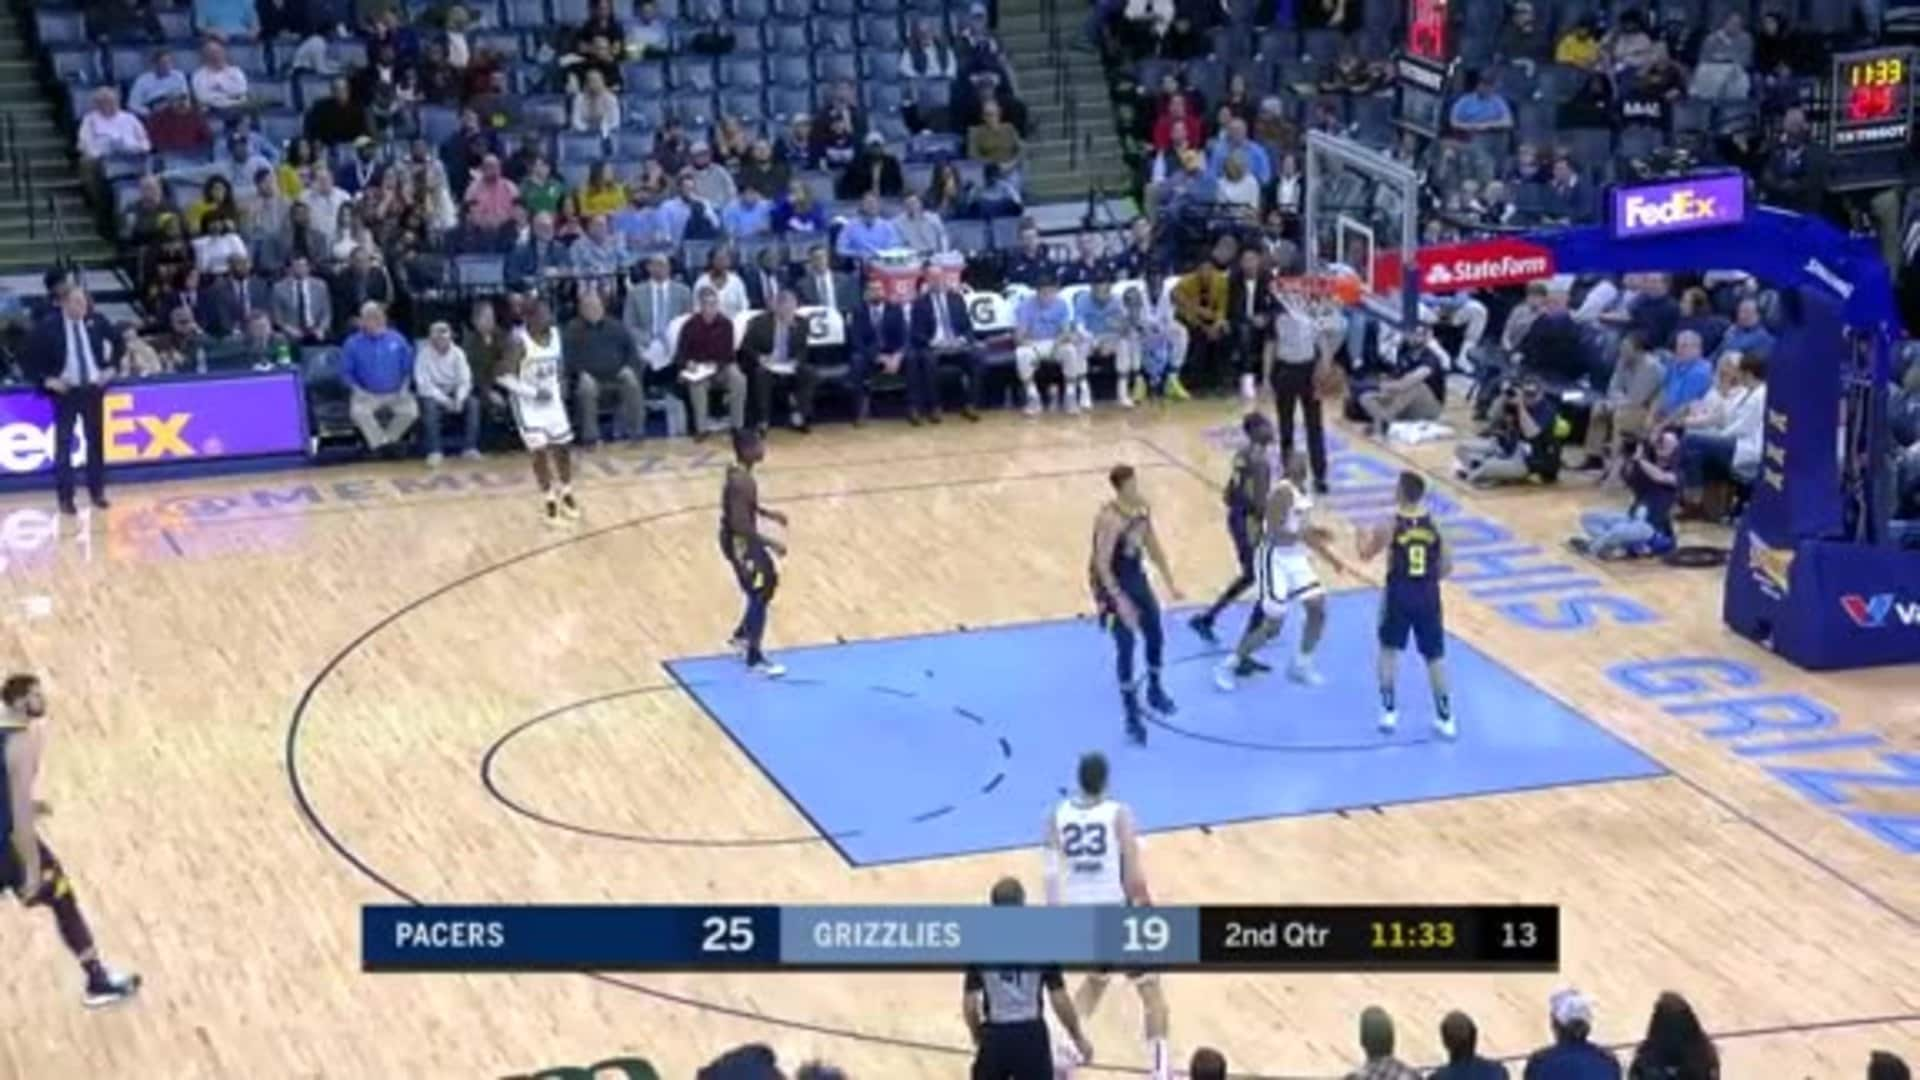 Memphis Grizzlies go on a 12-0 run